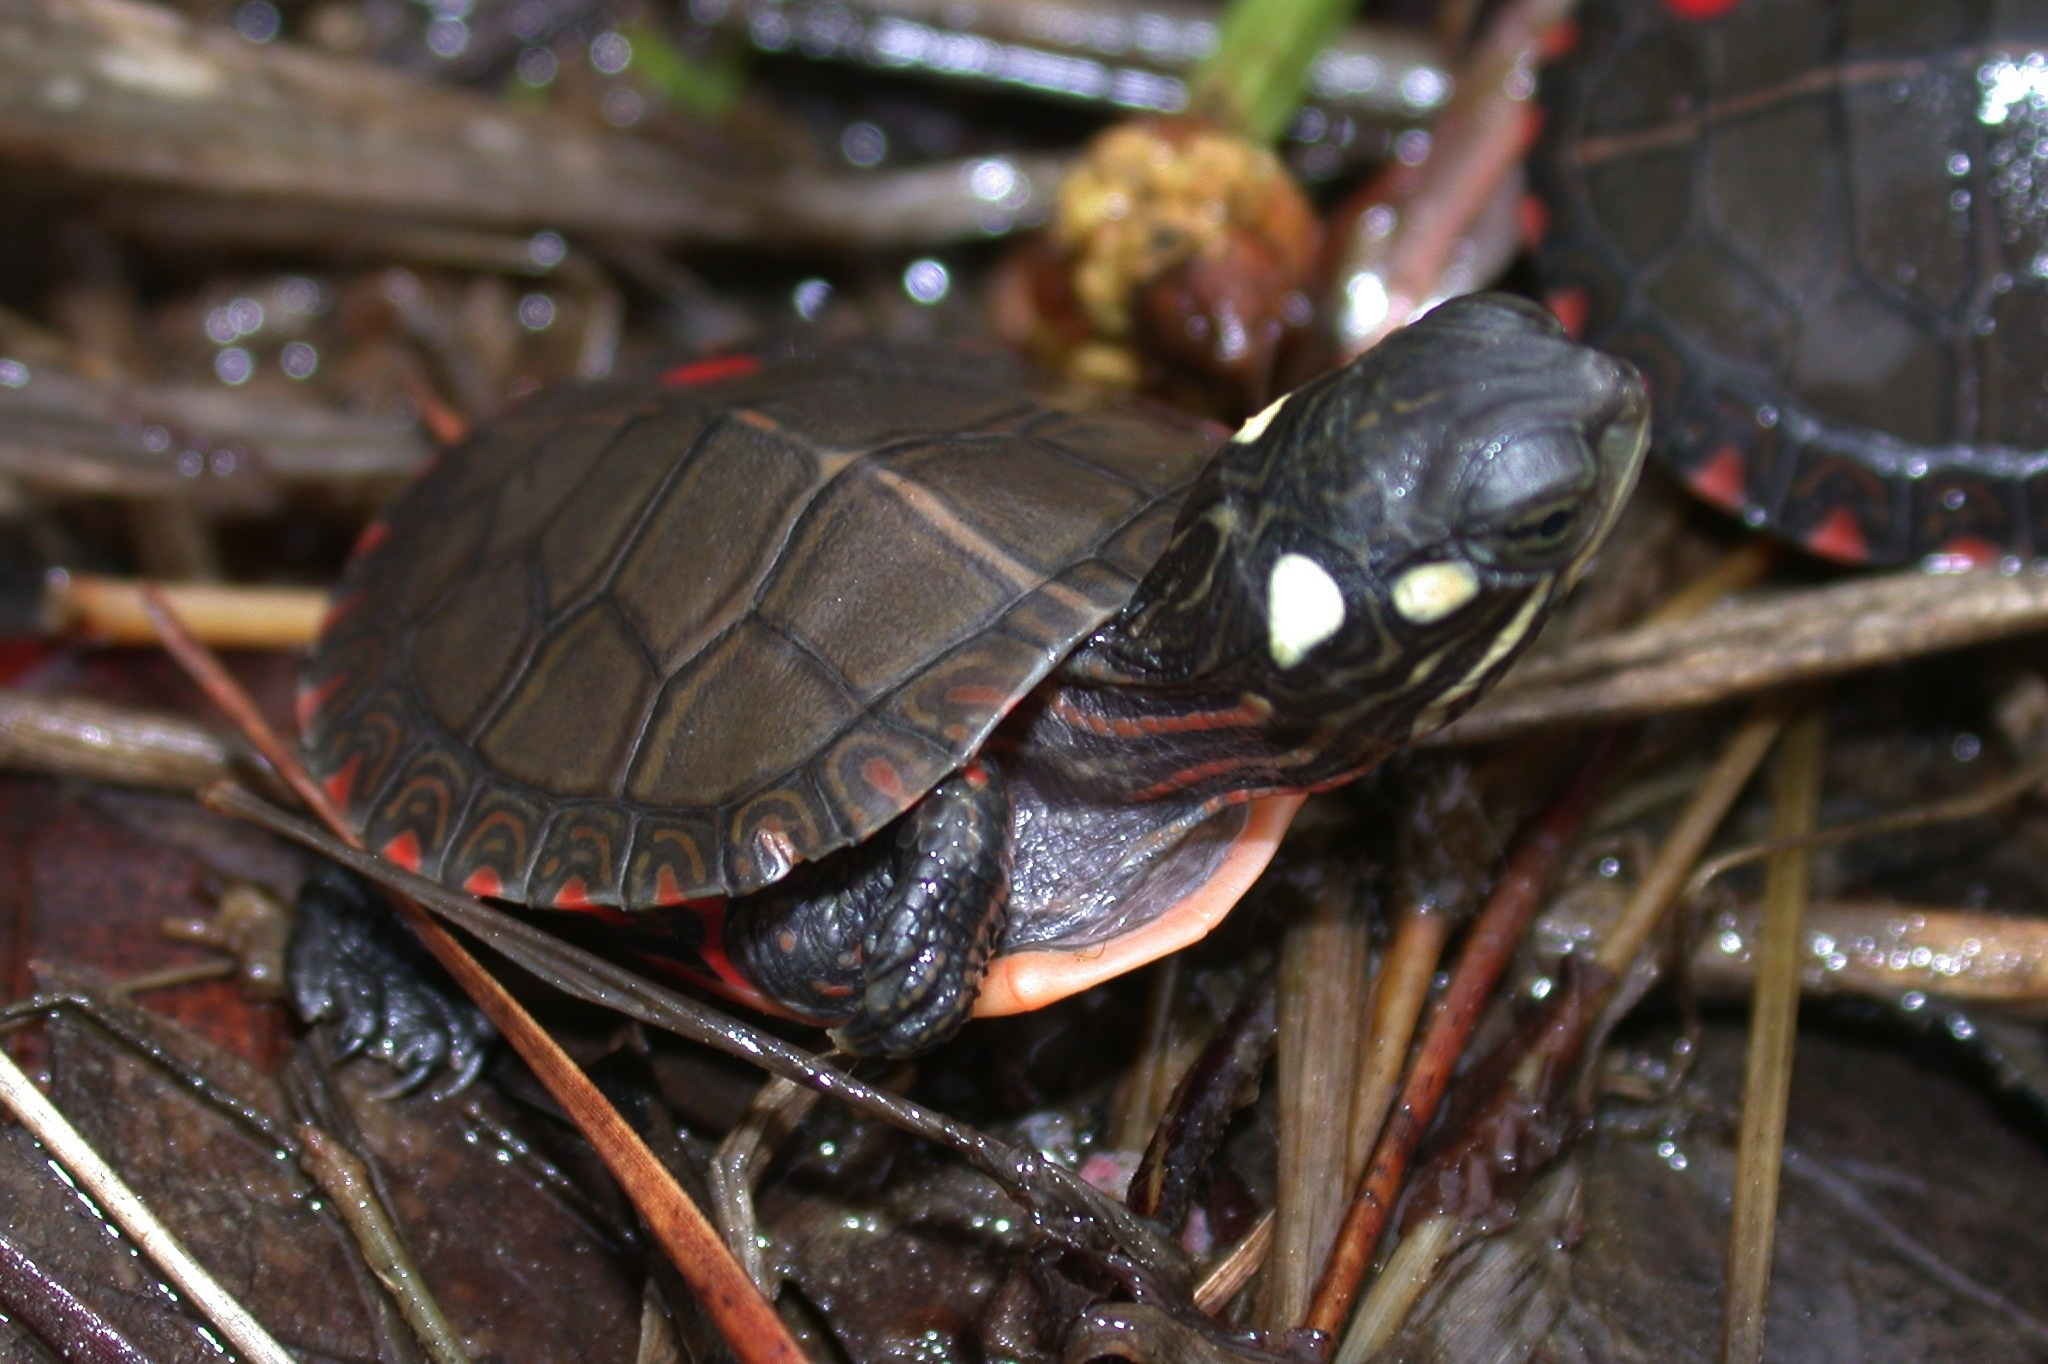 Painted turtle hatchling Photo by JD Willson